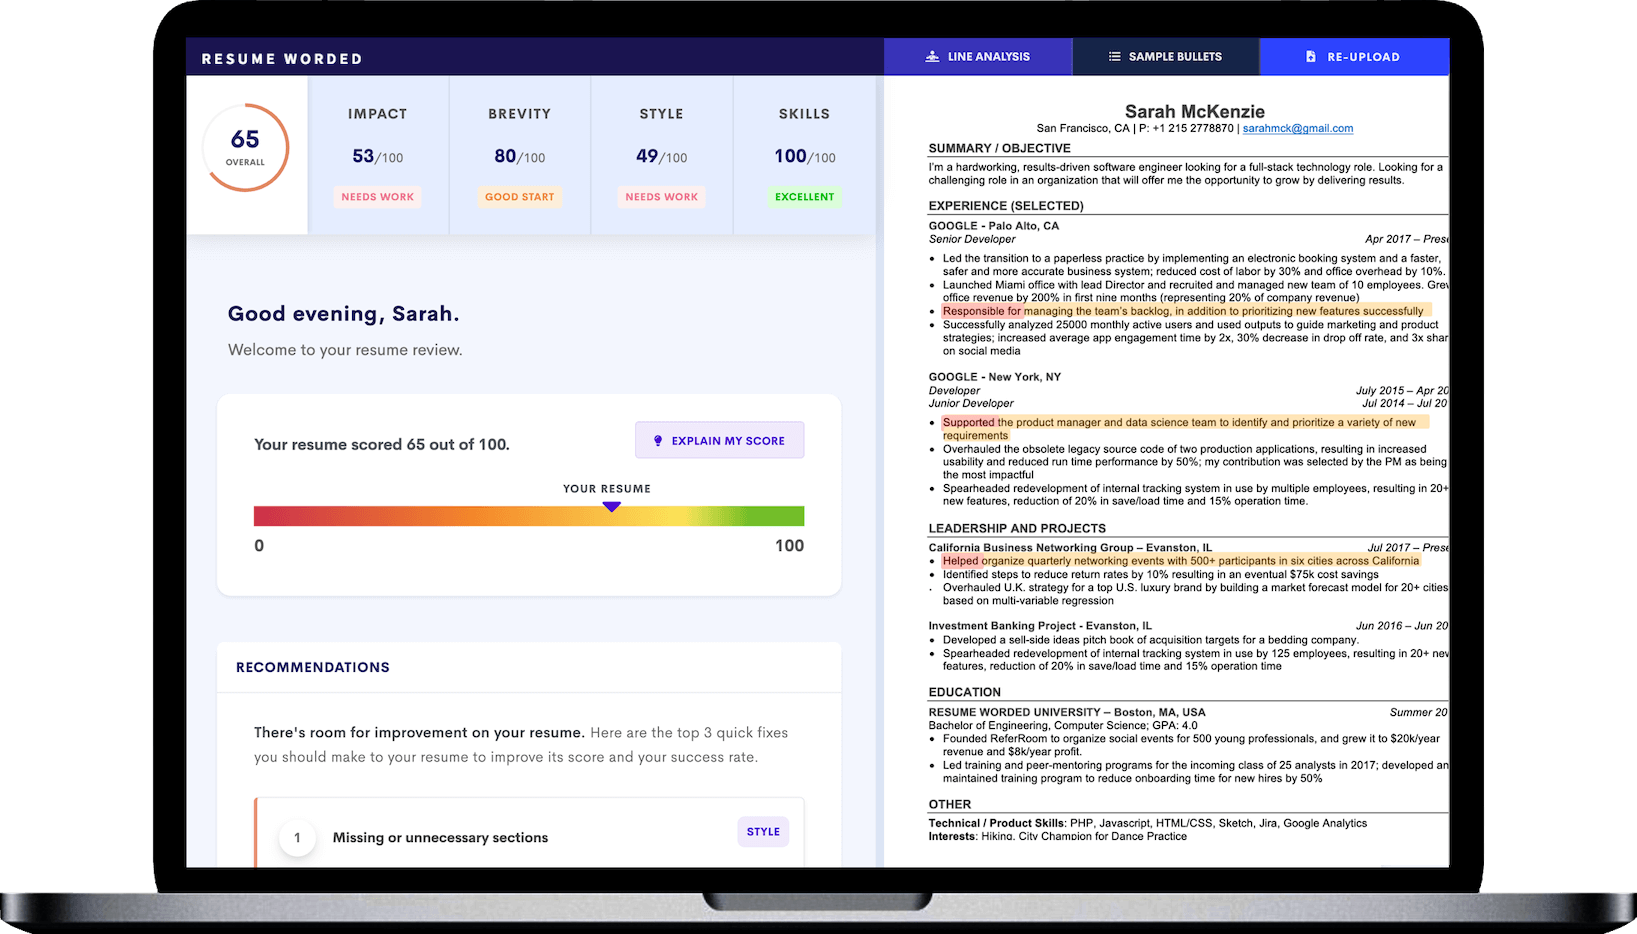 Score My Resume is a free, AI-powered tool that will analyze your stay at home mom or parent resume